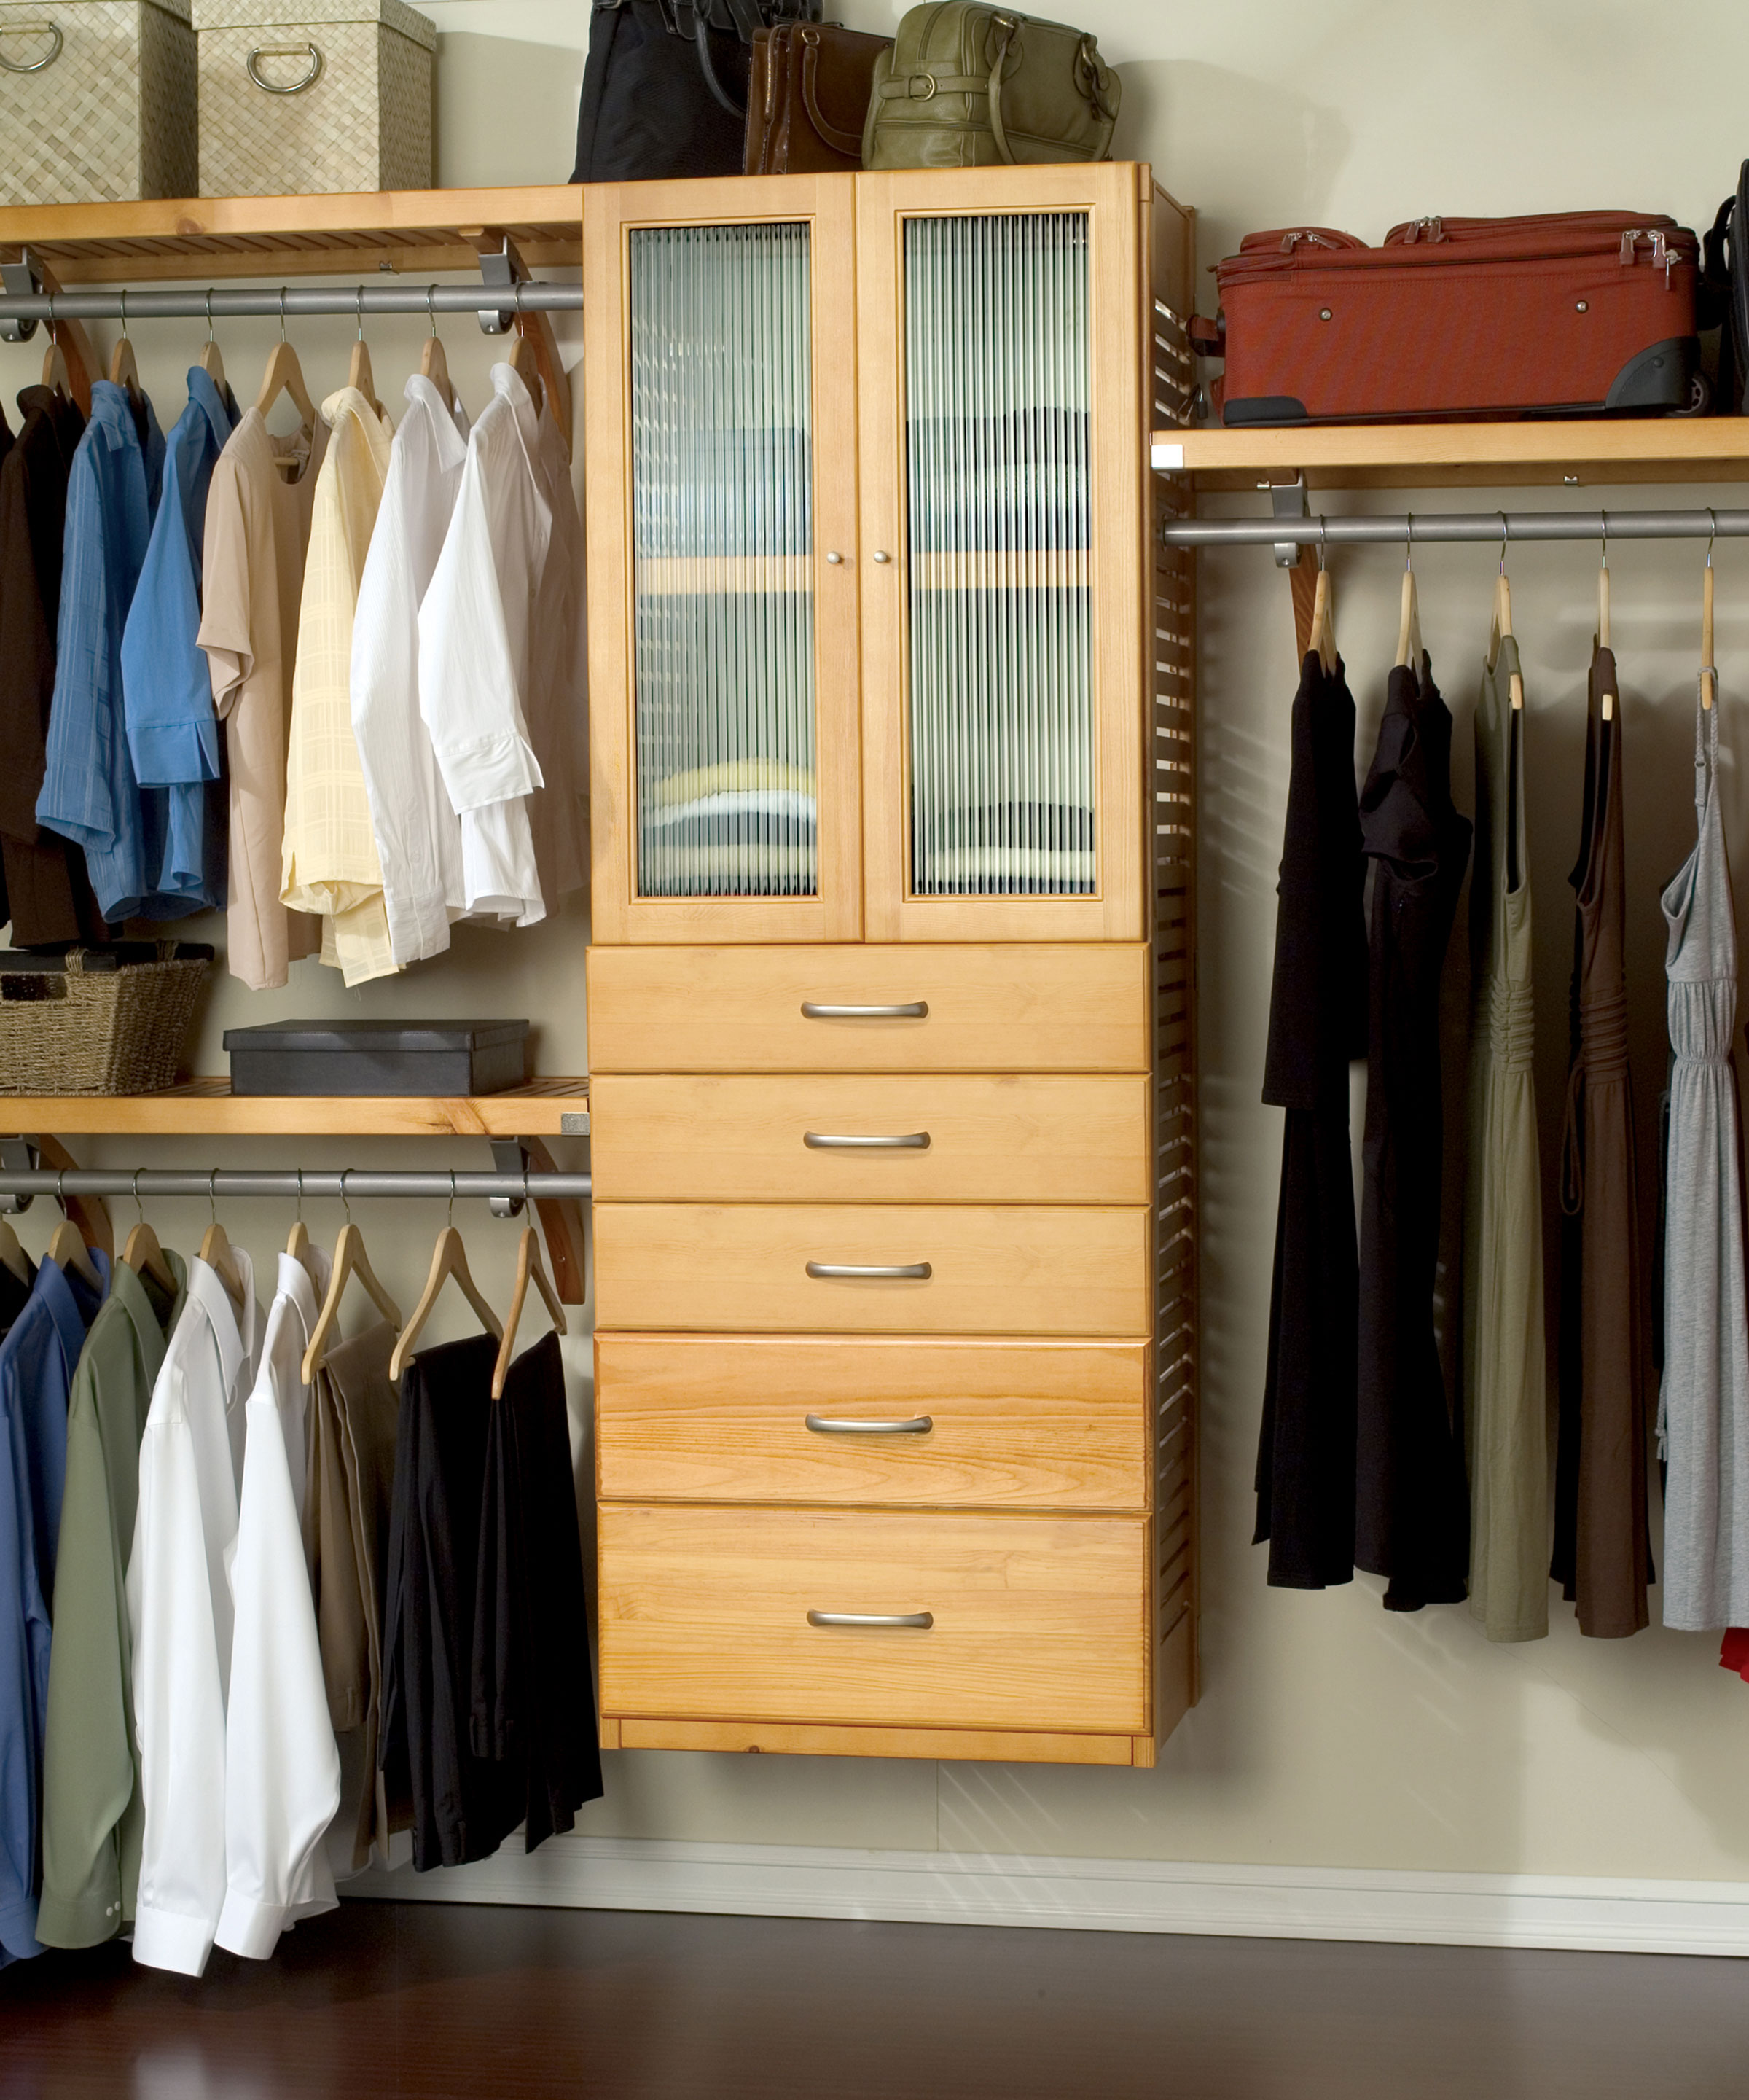 Cedar Plywood for Closets | Cedar Closet Kit | Aromatic Cedar Boards